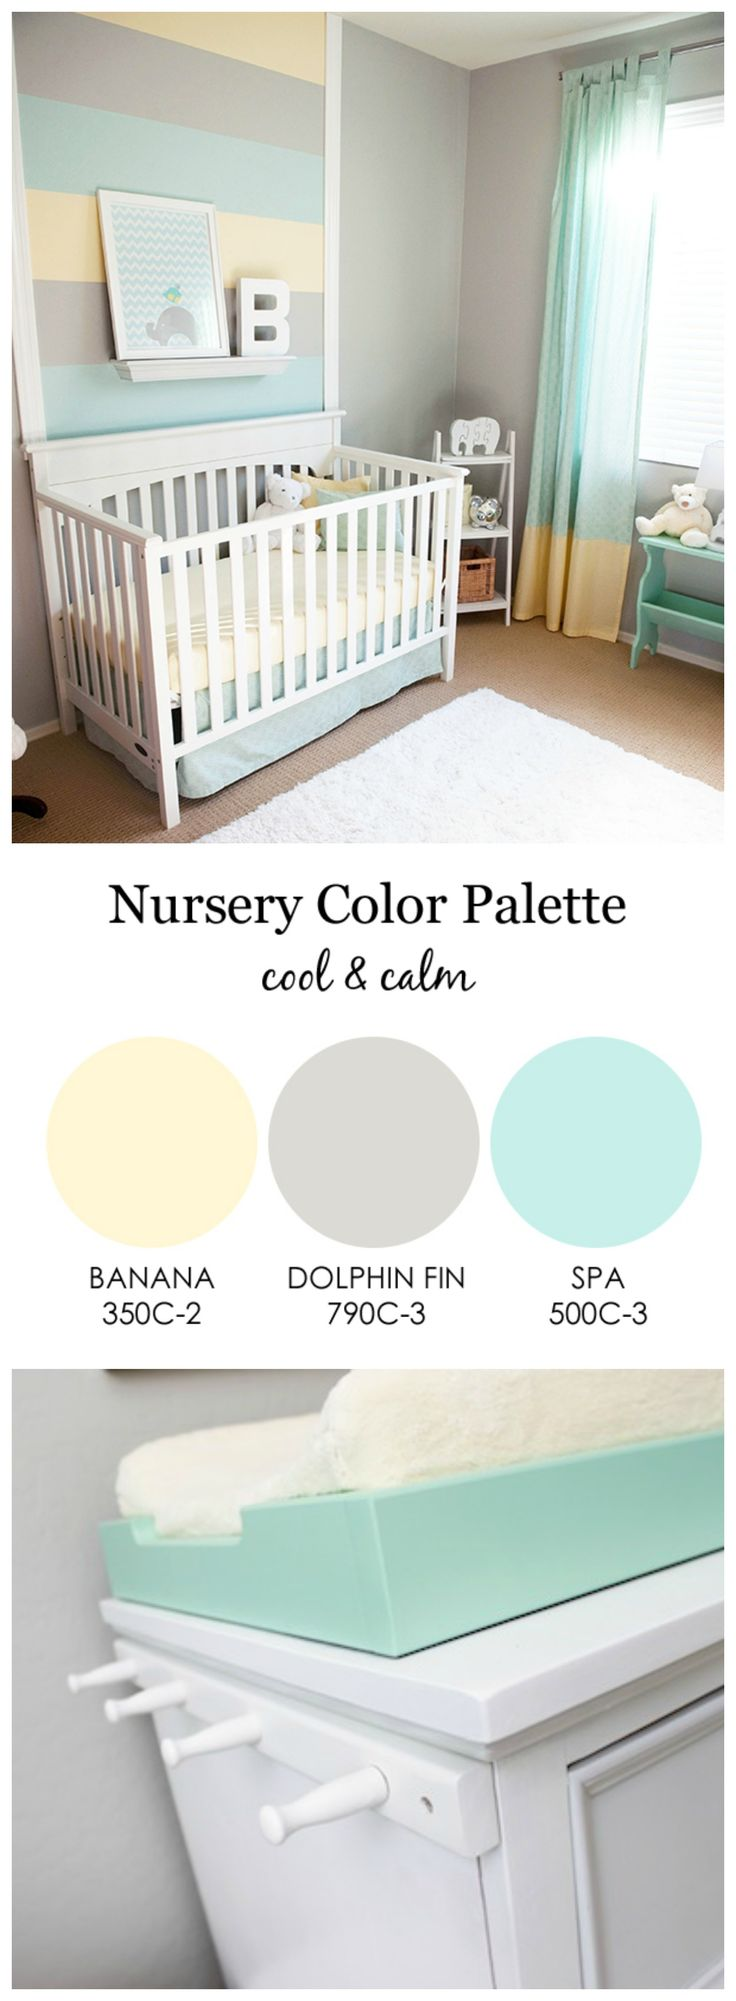 25 Best Ideas About Nursery Paint Colors On Pinterest